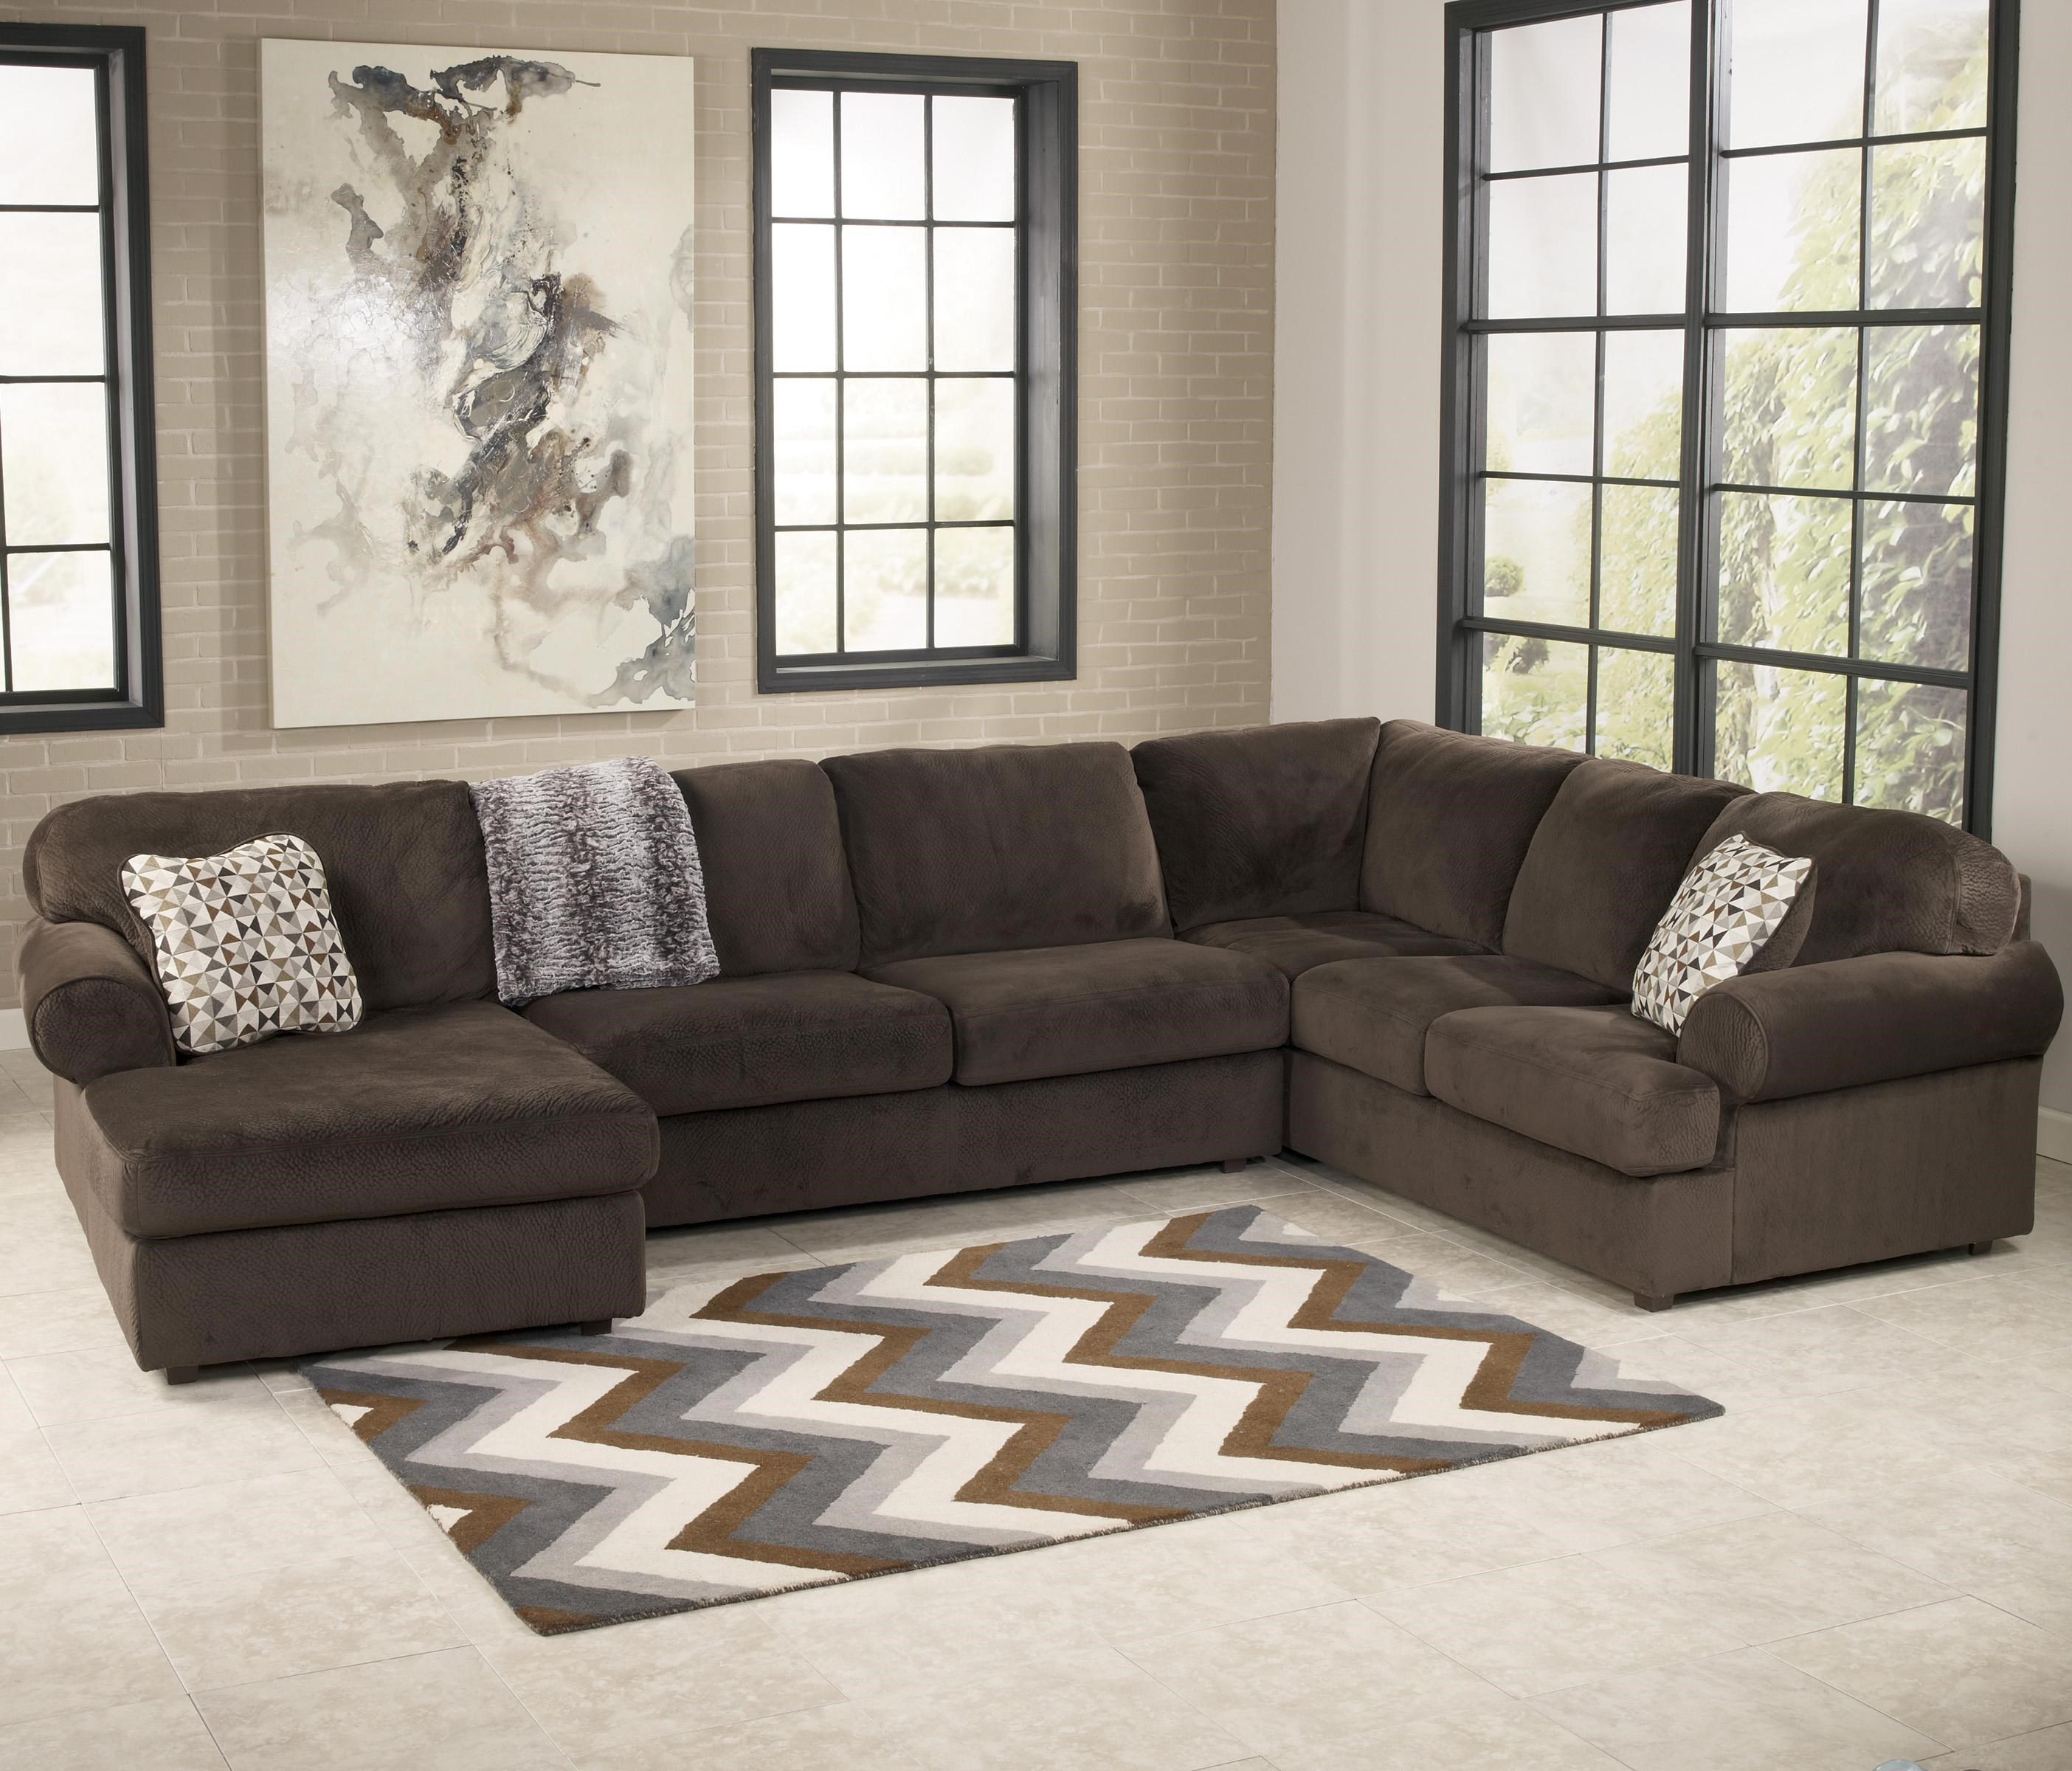 incredible Eastlake Furniture Price Guide Part - 9: Signature Design by Ashley Jessa Place - ChocolateSectional Sofa with Left  Chaise ...